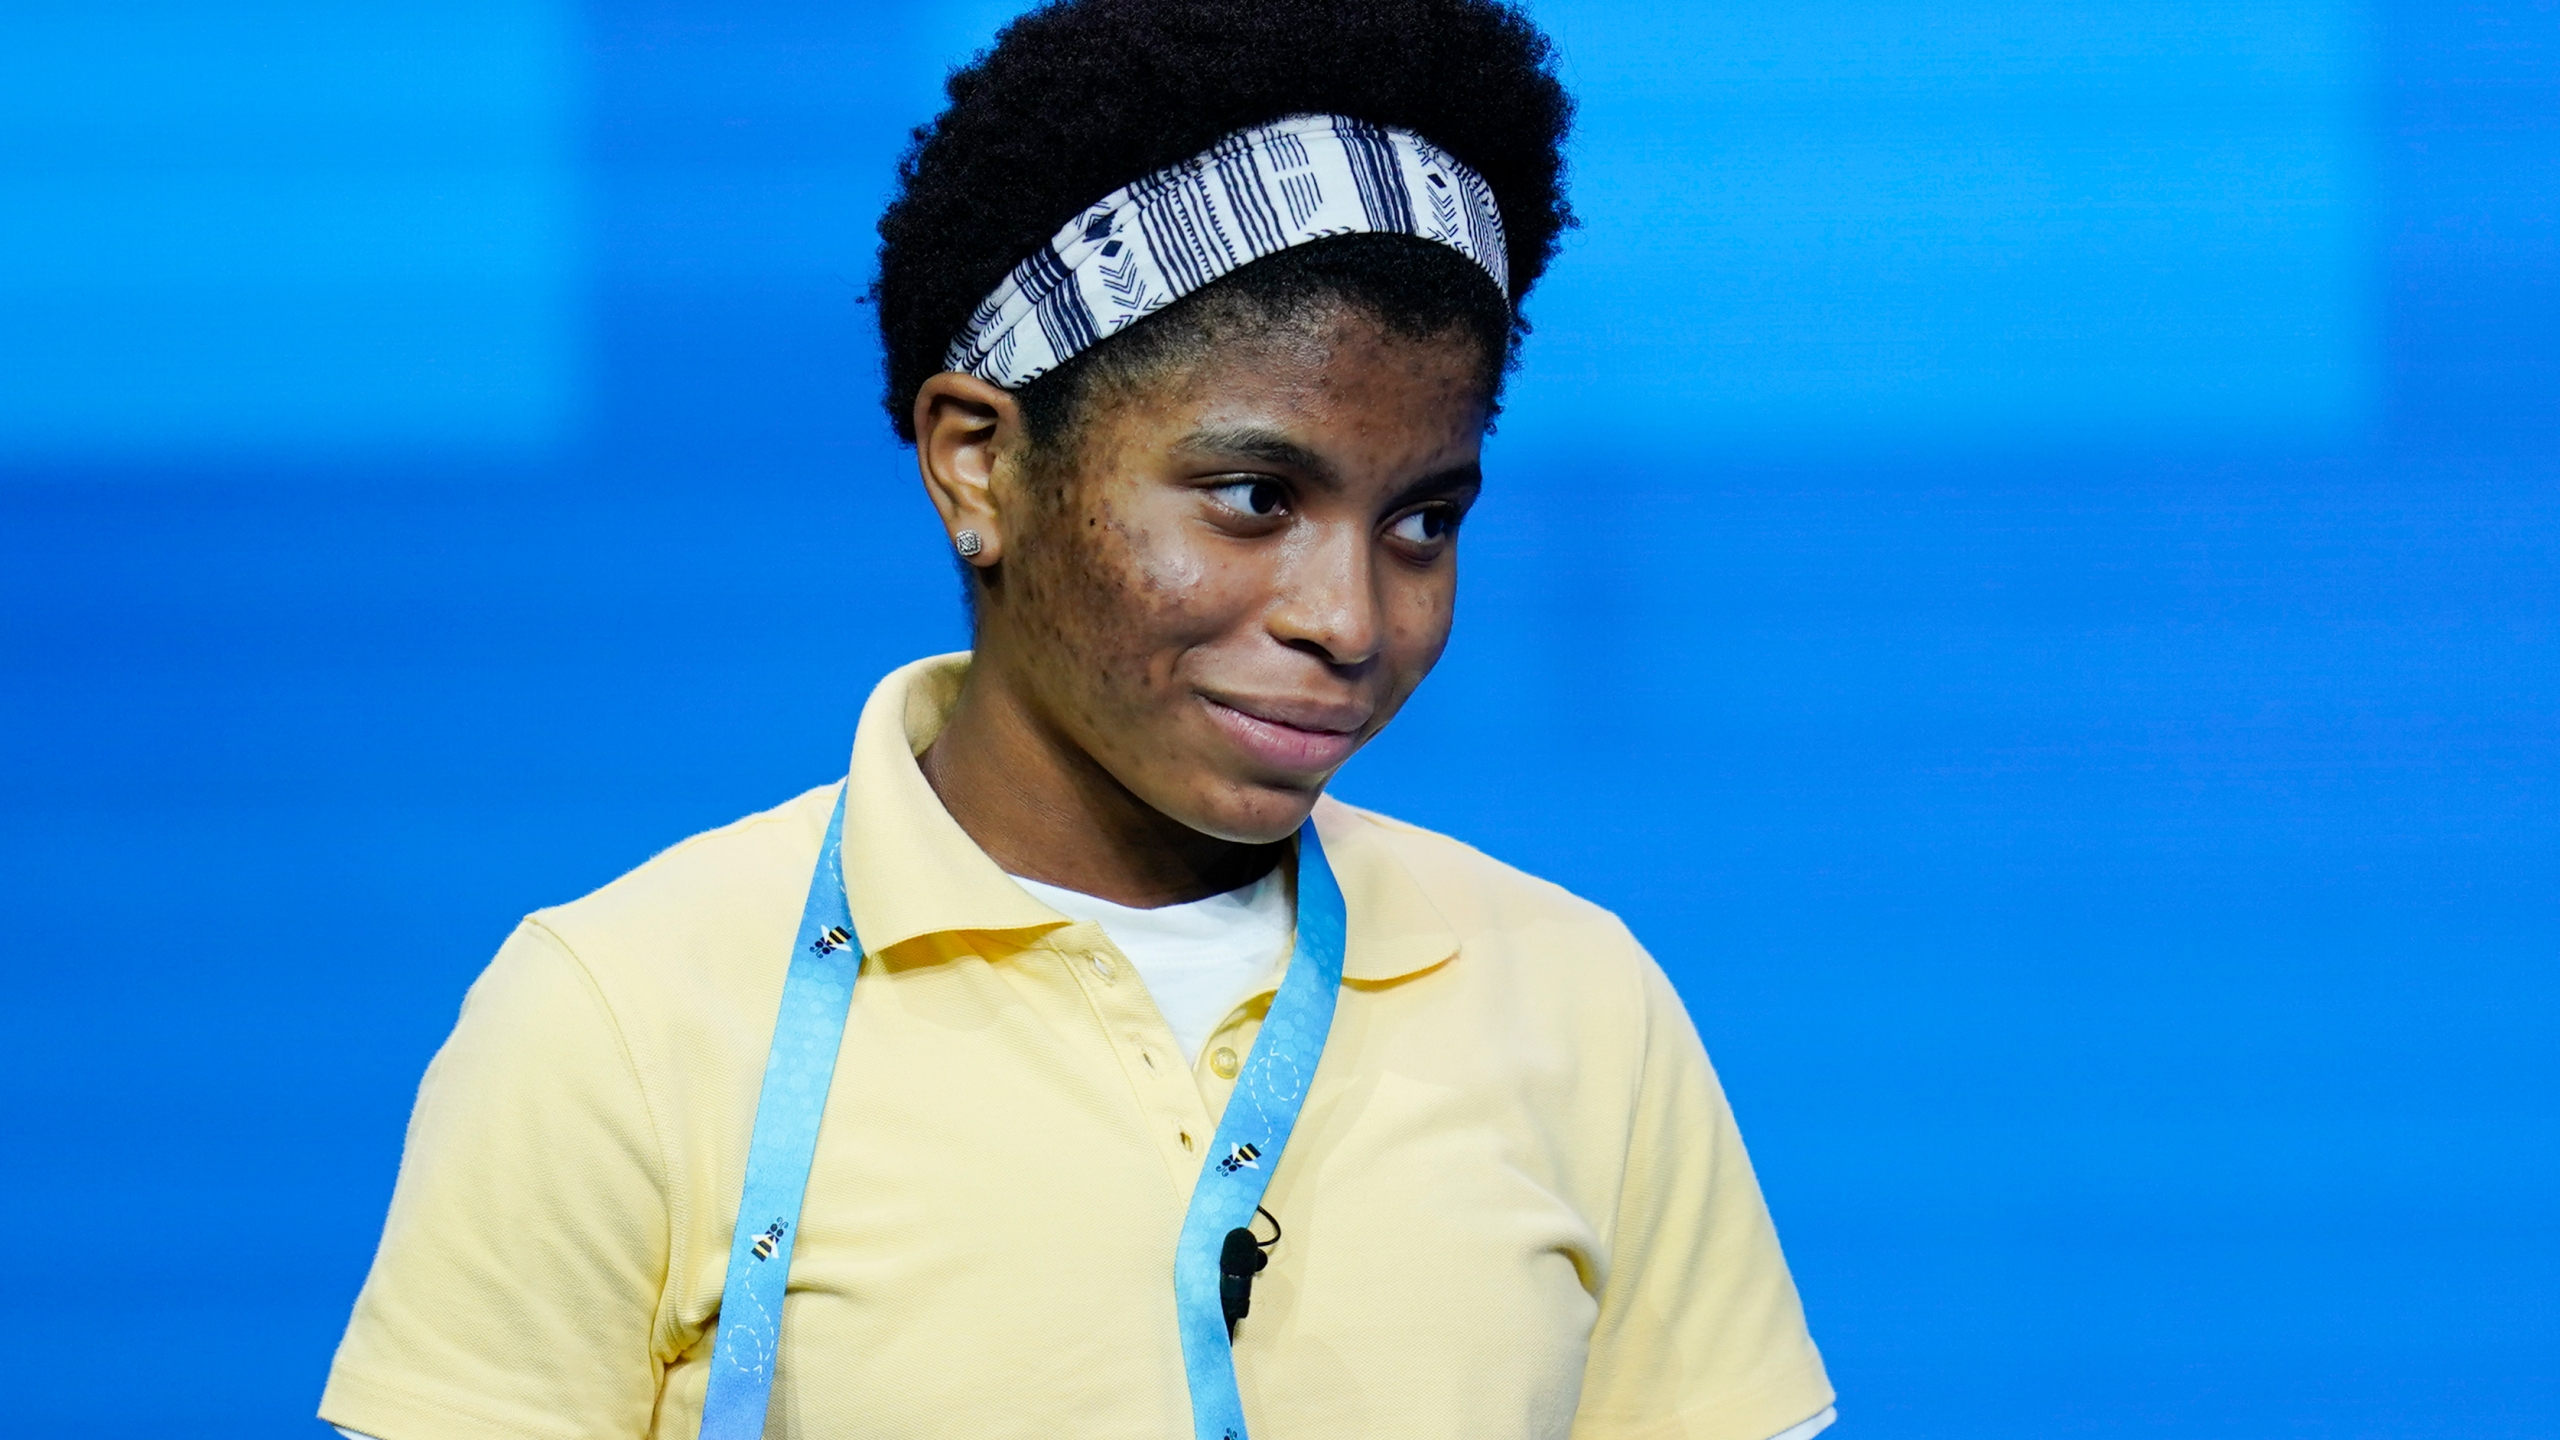 Zaila Avant-garde, 14, from Harvey, Louisiana reacts after correctly spelling a word during the finals of the 2021 Scripps National Spelling Bee at Disney World Thursday, July 8, 2021, in Lake Buena Vista, Fla. (AP Photo/John Raoux)